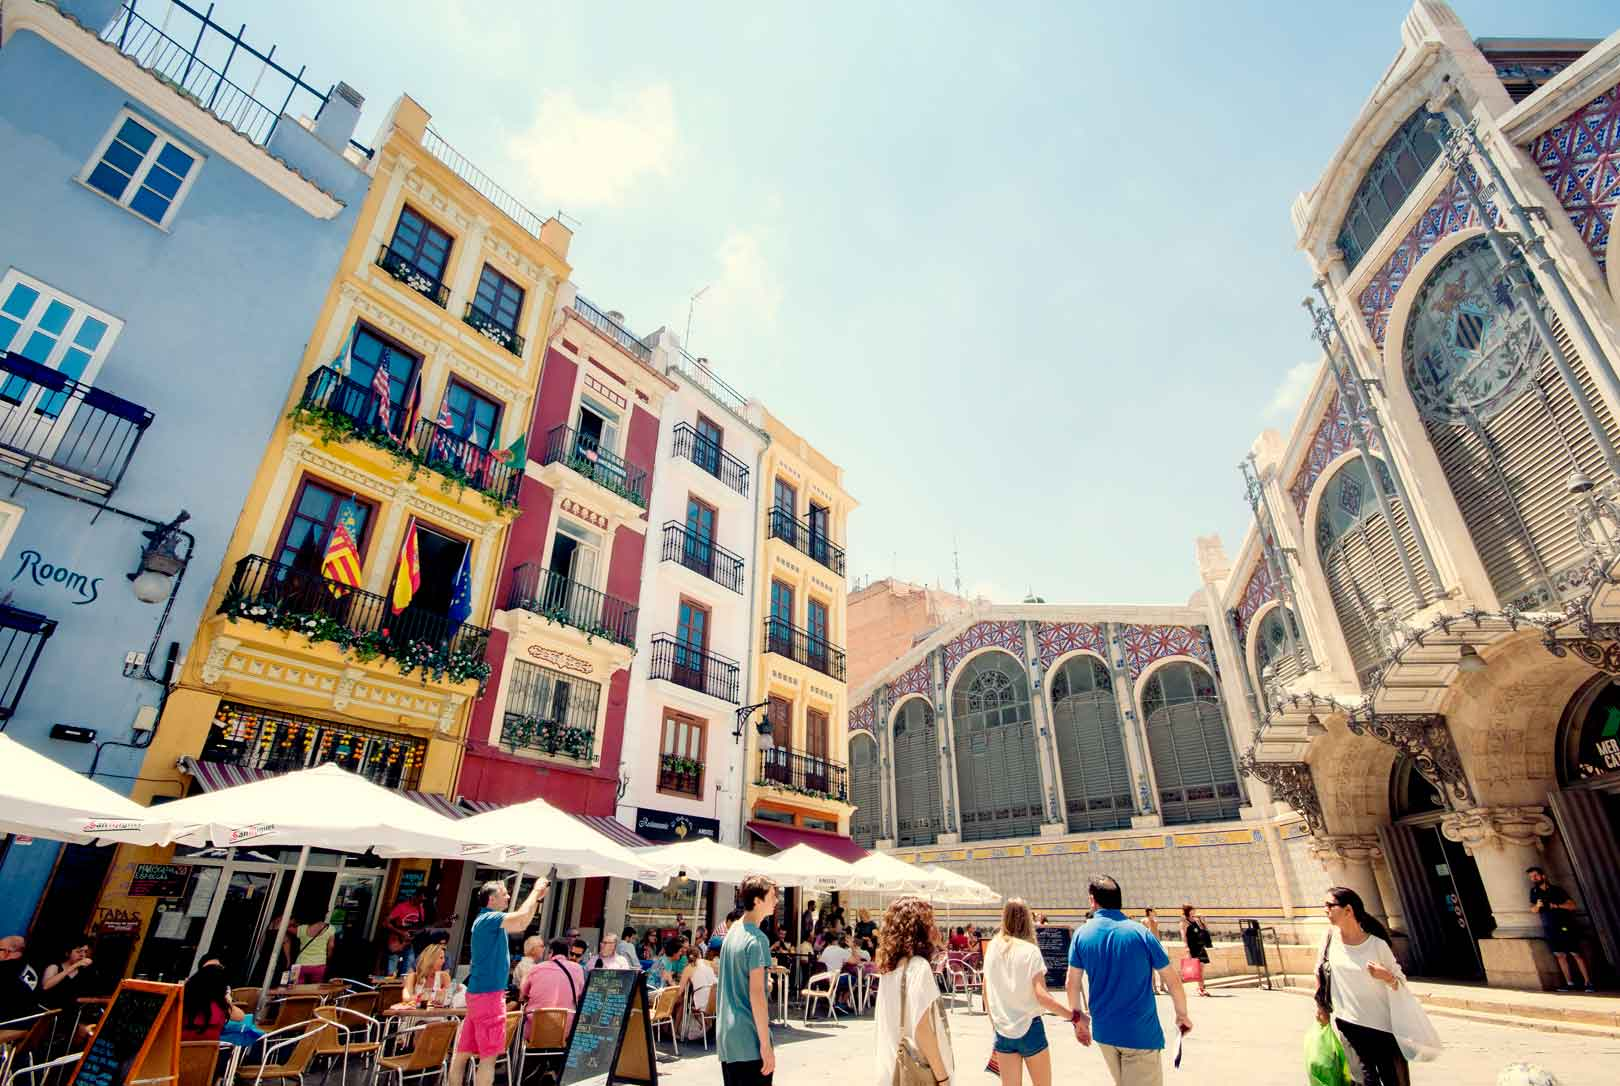 Top 5 activities in the region of Valencia